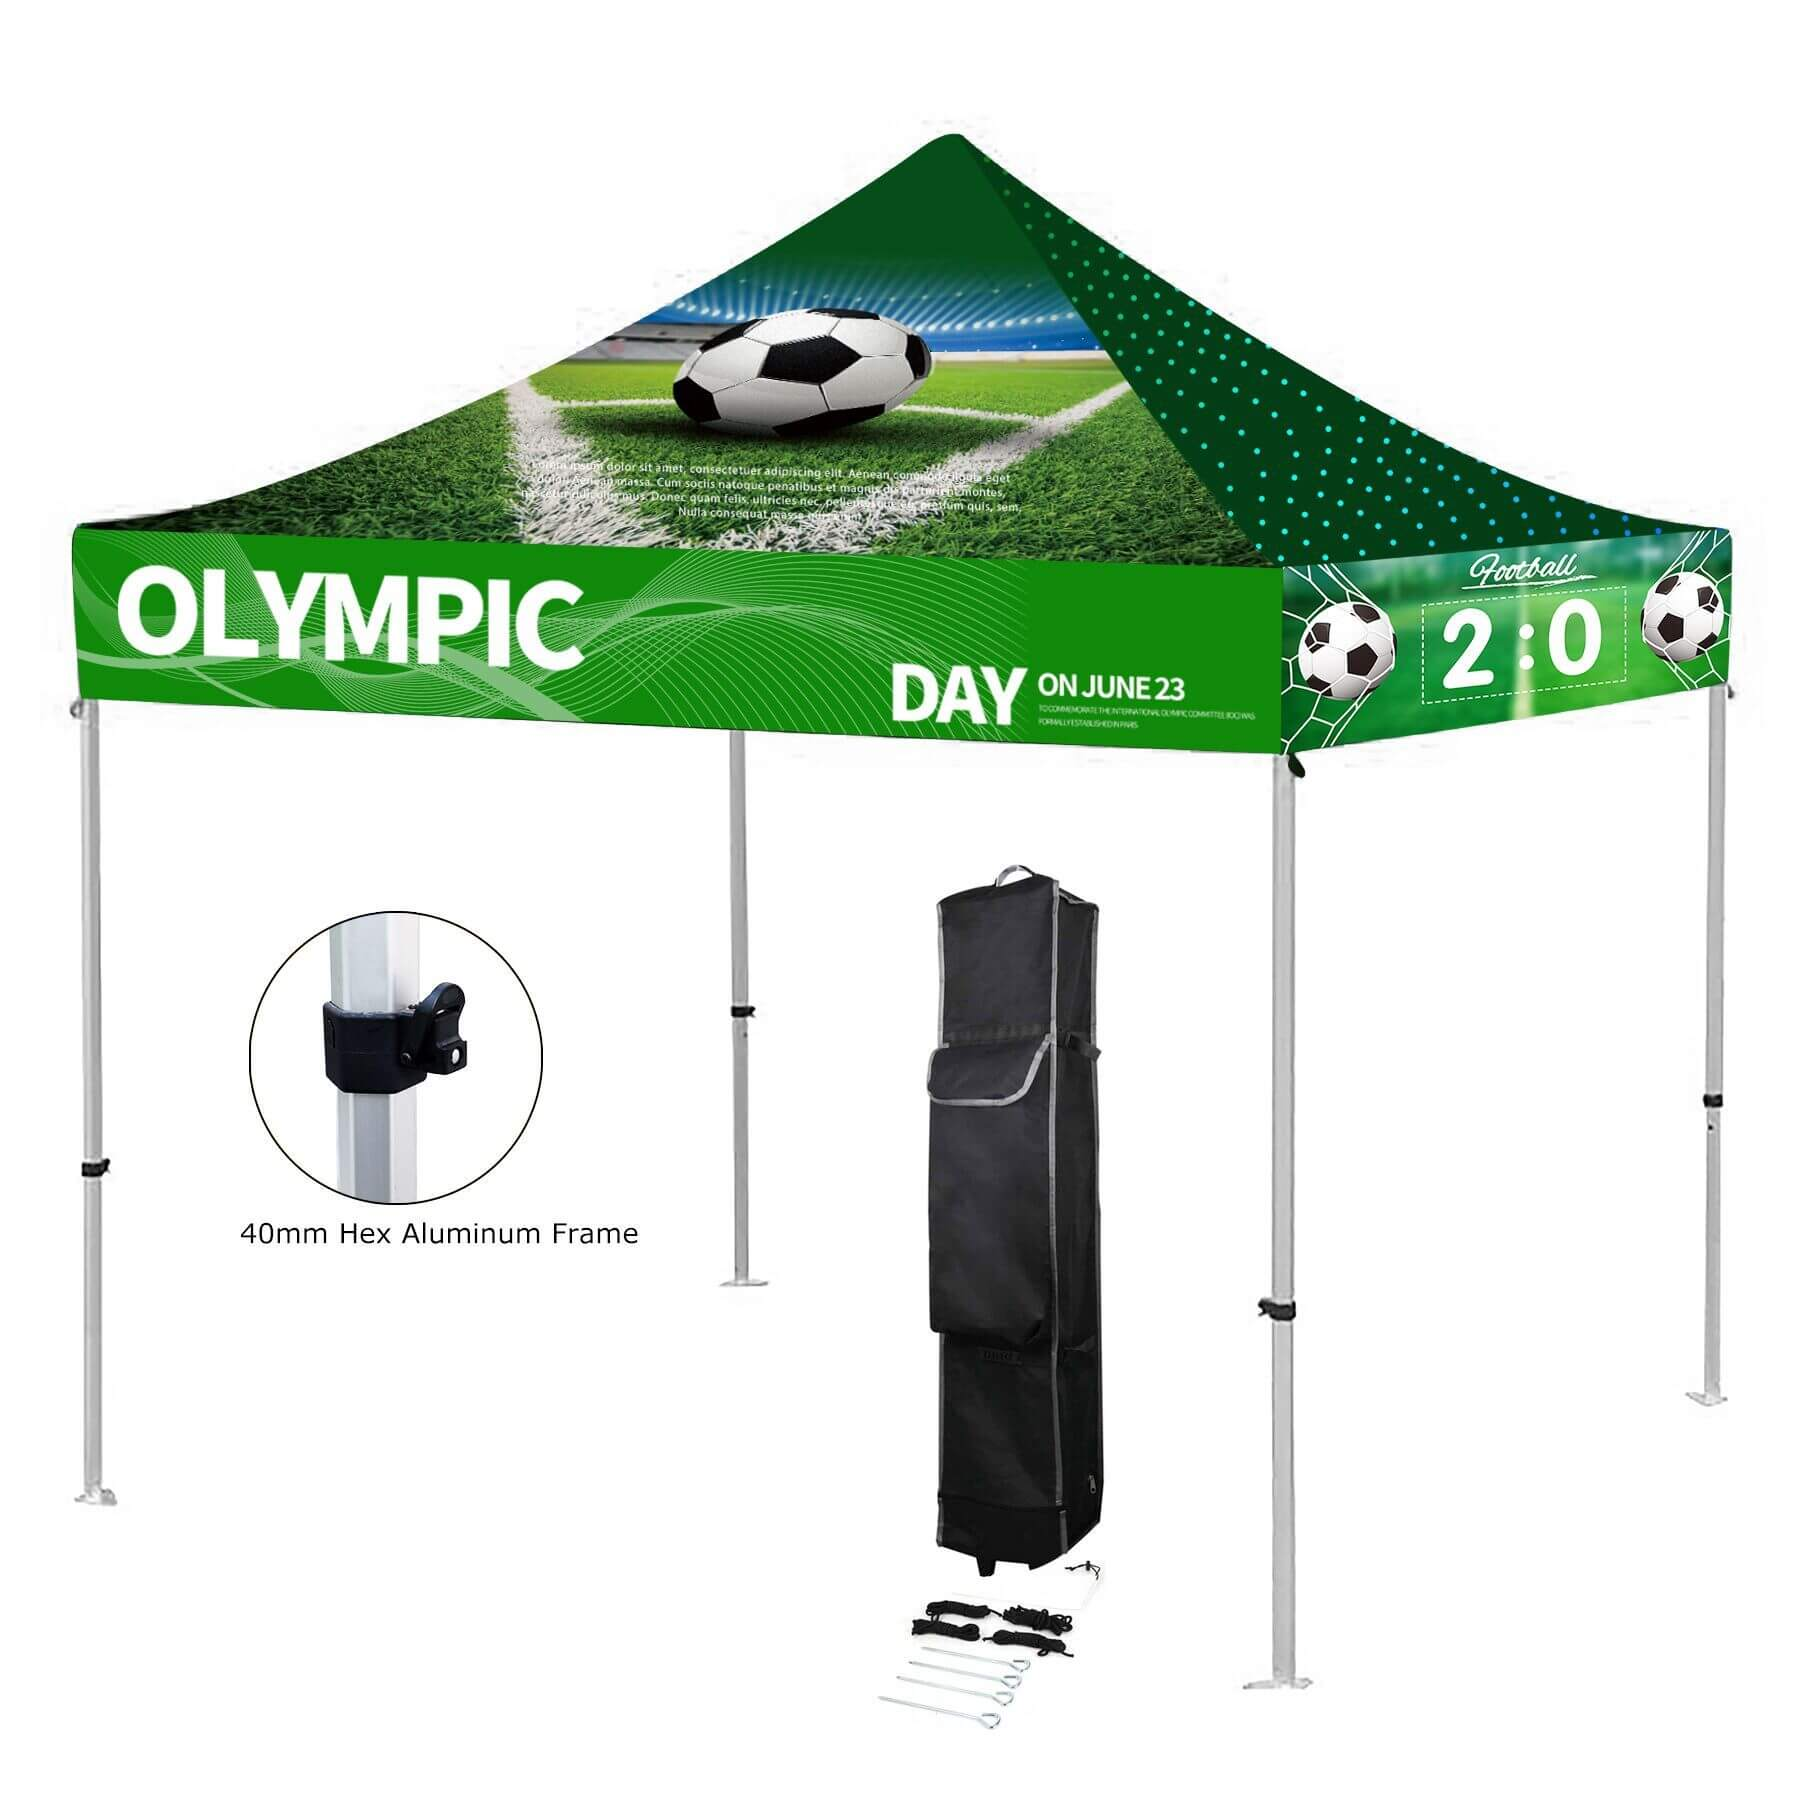 10' x 10' Custom Printed Pop up Tent Kit w/ Aluminum Frame - 10' x 10' Premium Aluminum Canopy Tent Kit ( Dye Sublimation)